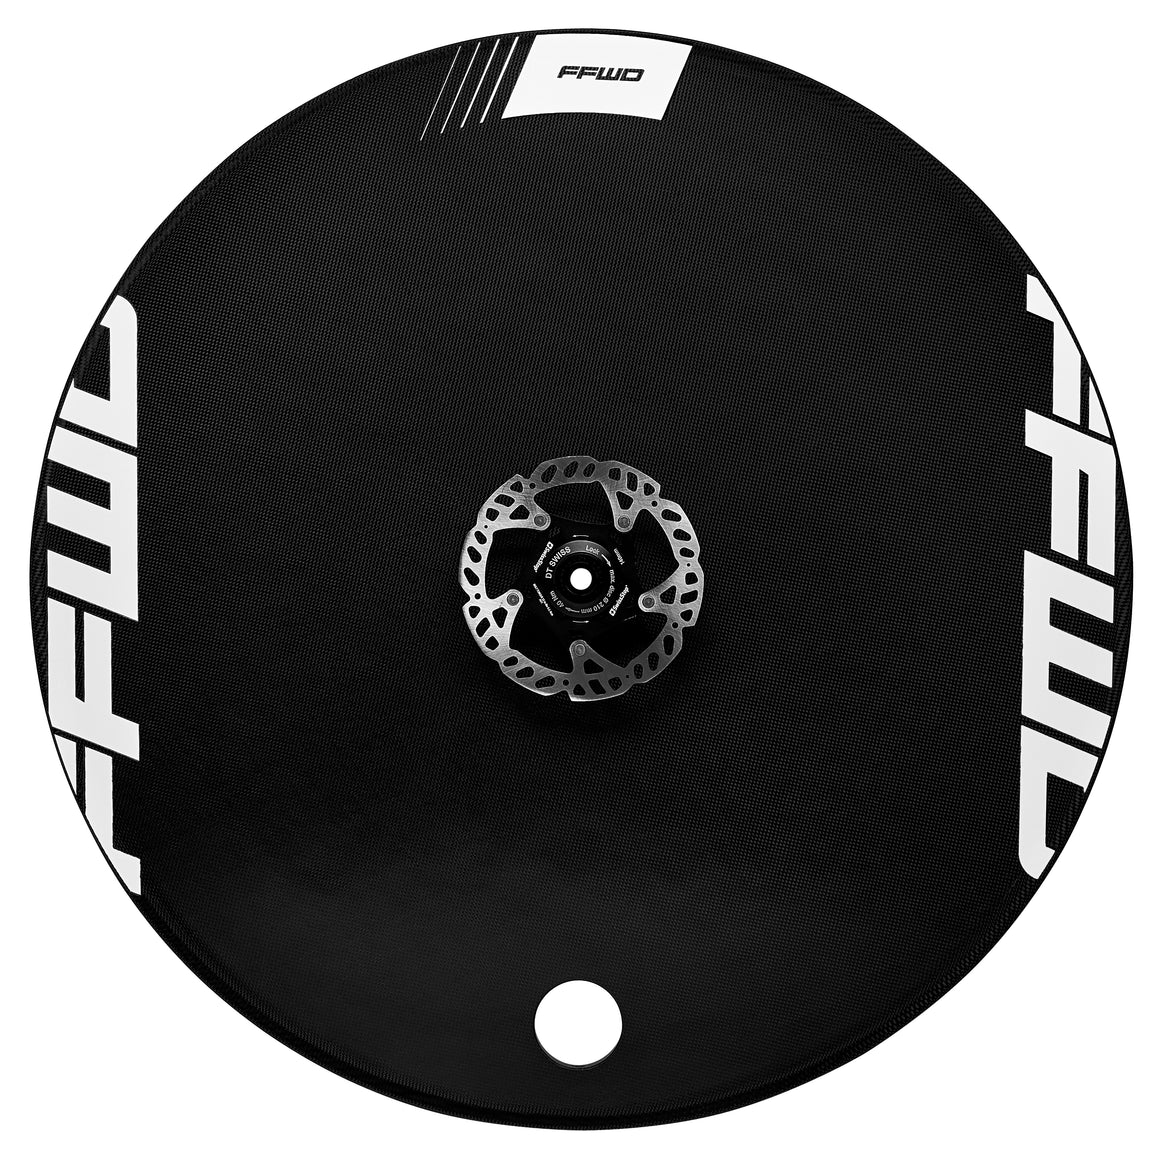 FFWD Carbon 1K Rear Disc Wheel (DISC FCC SL) - Disc Brake - Bike Wheels